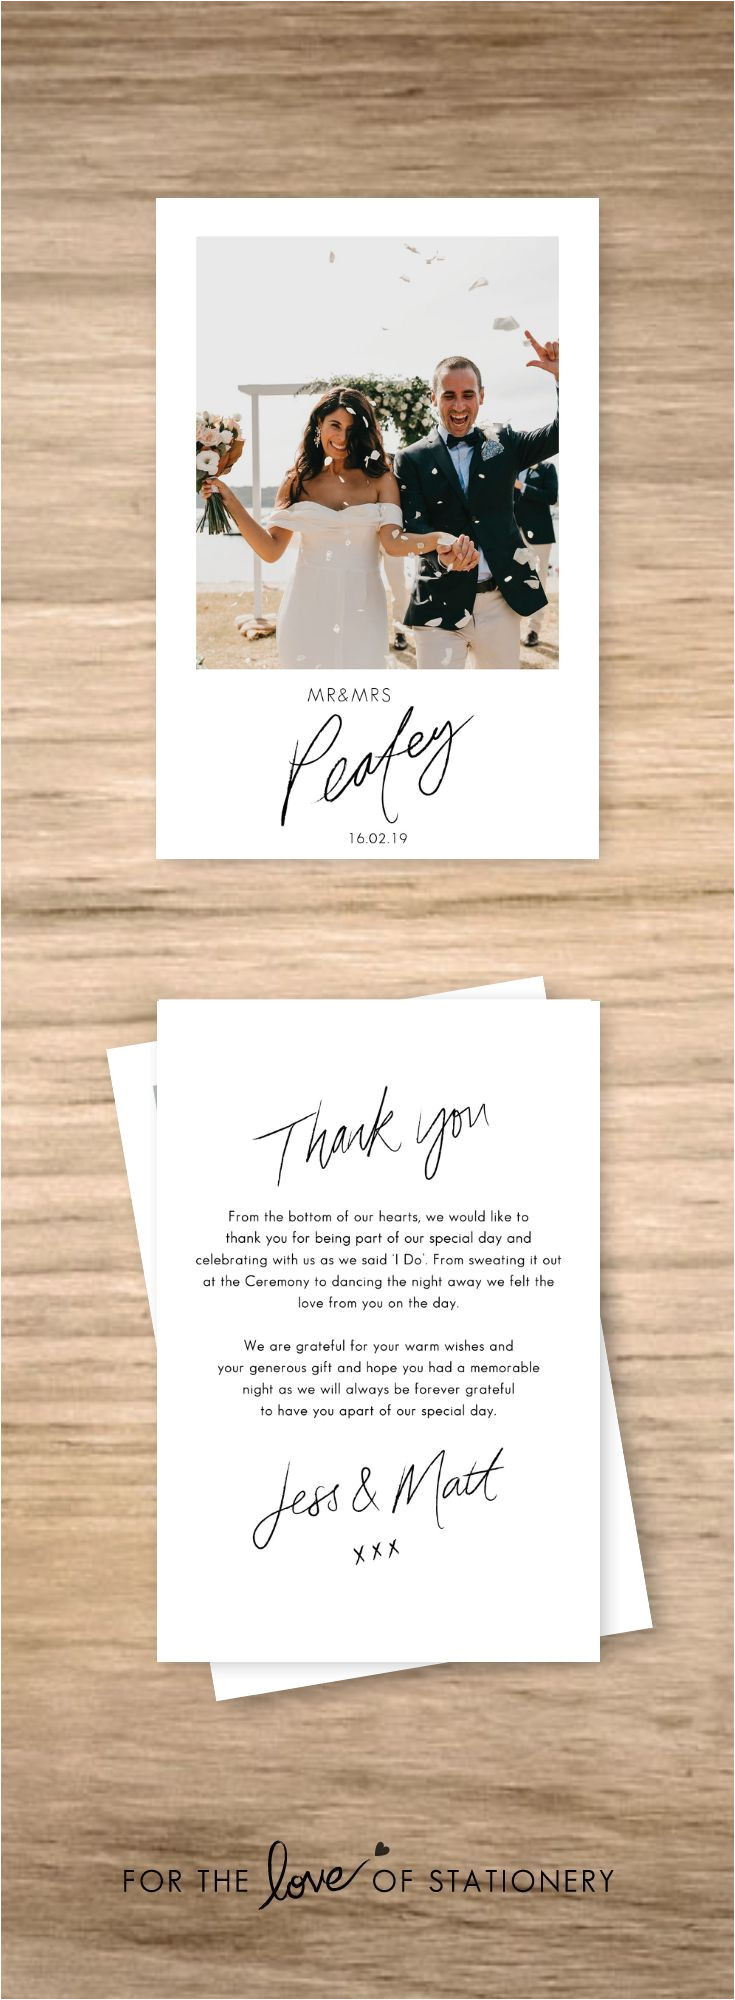 Thank You Wedding Card Ideas Personalised Wedding Thank You Cards with Photos with